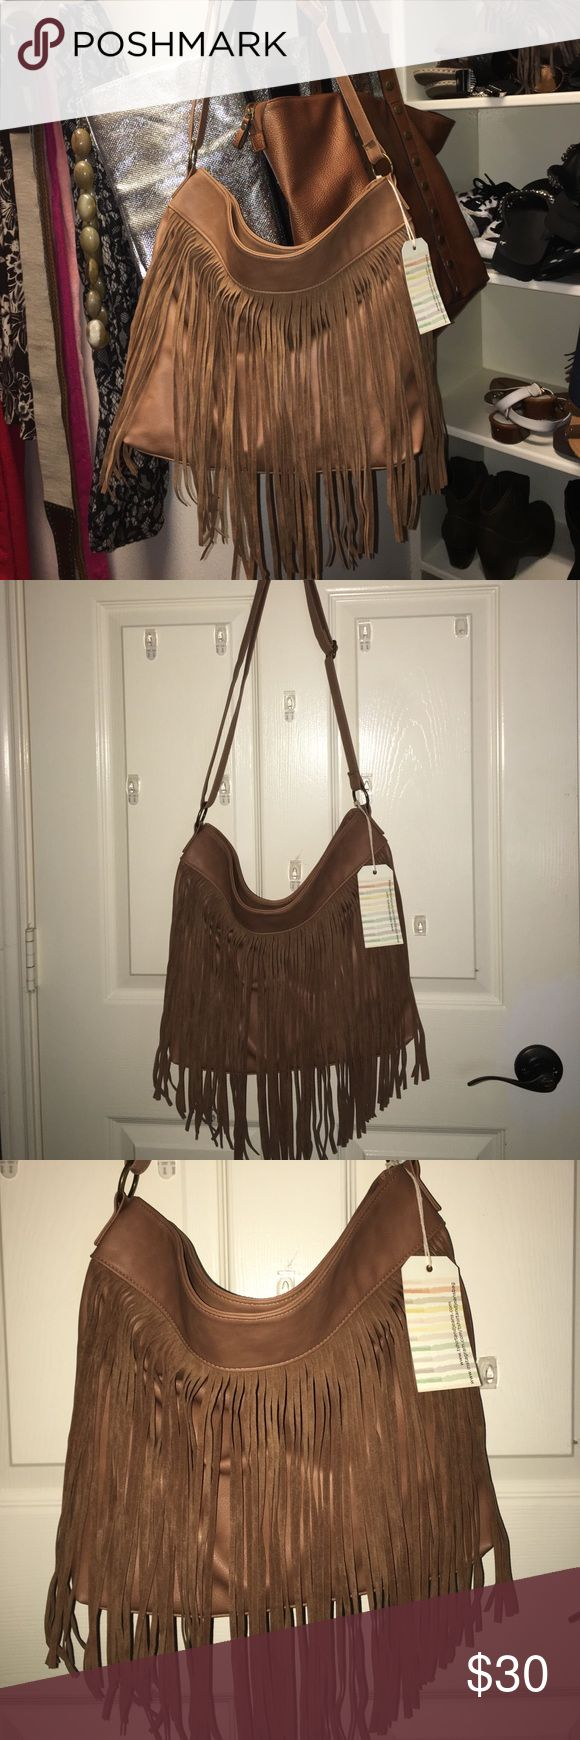 Gorgeous brown fringe bag. NWT I know, just bought it. It's beautiful. I just have too much stuff! Brown fringe bag. NWT Bags Shoulder Bags